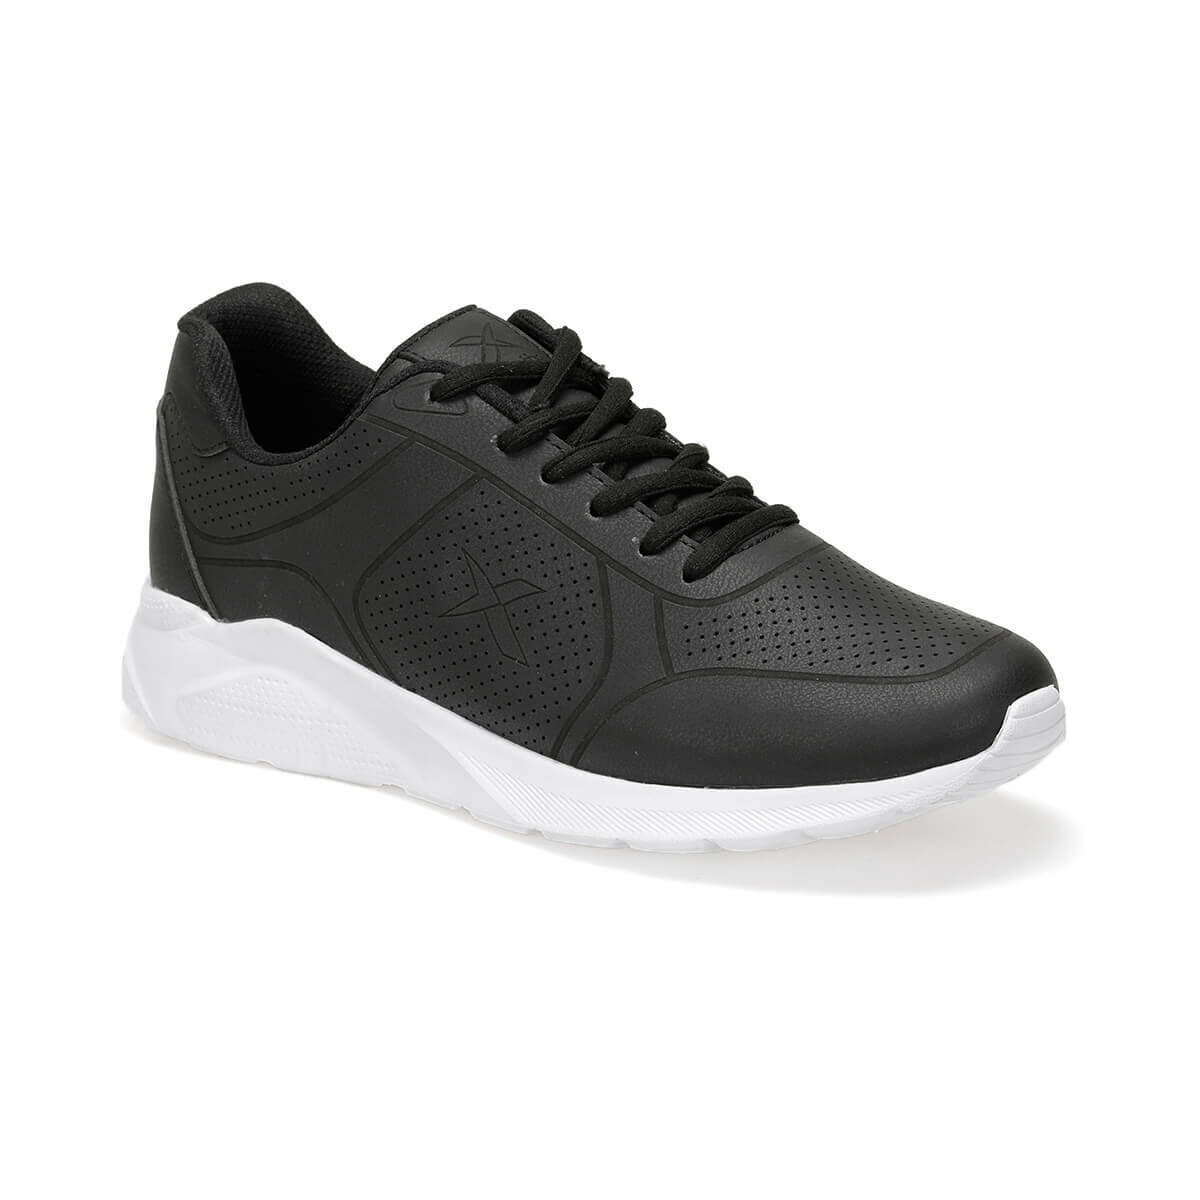 FLO FAVER M 9PR Black Men 'S Sneaker Shoes KINETIX